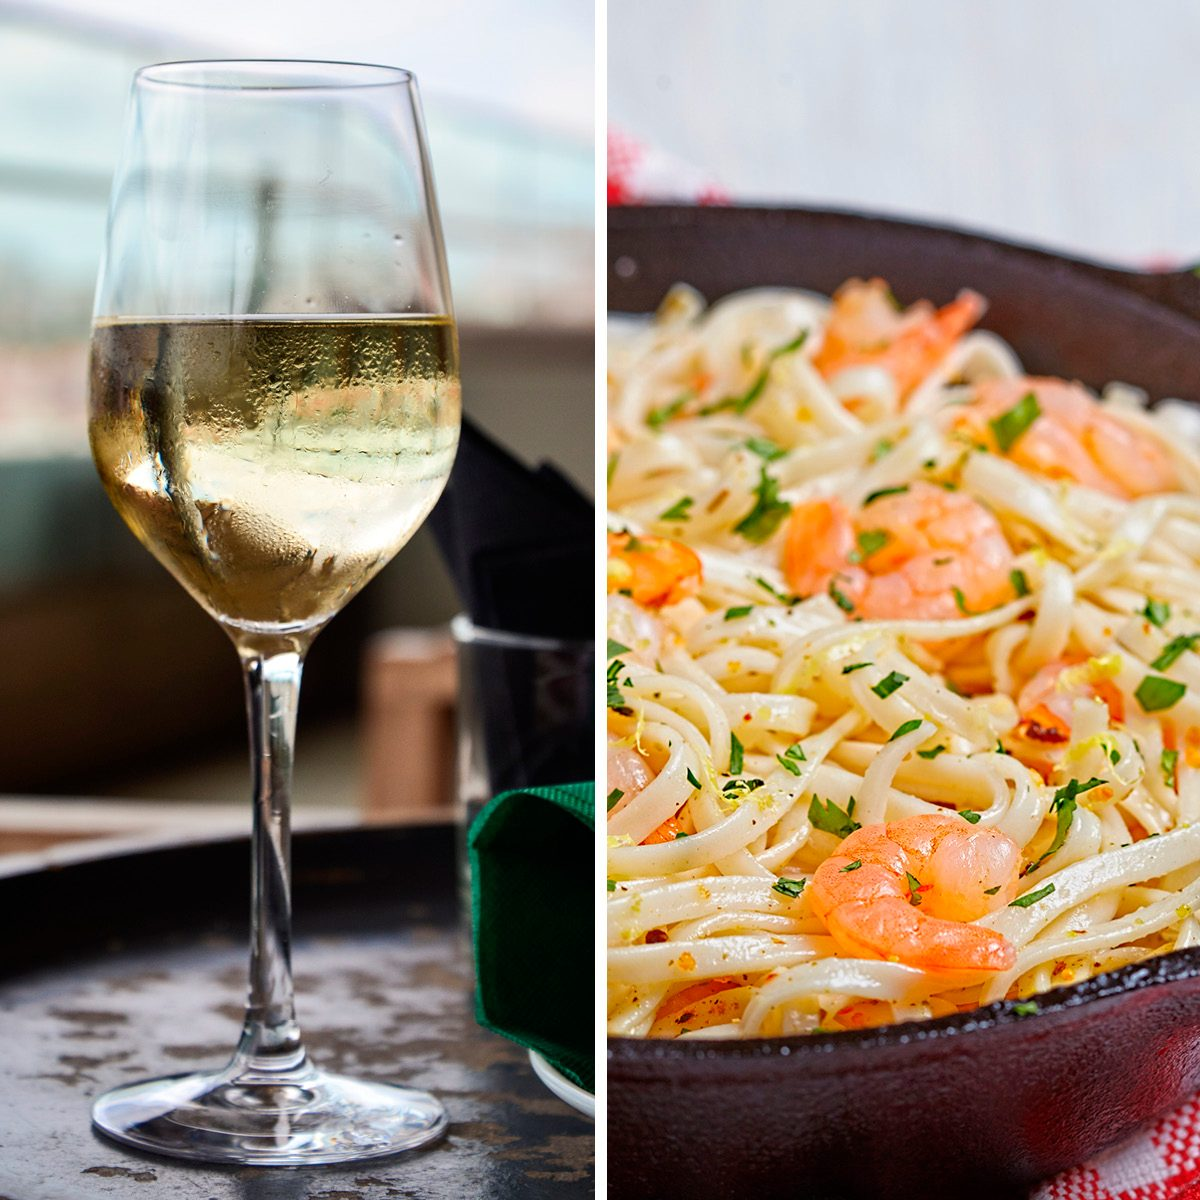 Pasta with Shrimp Scampi in a pan; Shutterstock ID 226410616; Job (TFH, TOH, RD, BNB, CWM, CM): TOH Glass with cold white wine on wooden table at restaurant interior closeup; Shutterstock ID 1474534157; Job (TFH, TOH, RD, BNB, CWM, CM): TOH